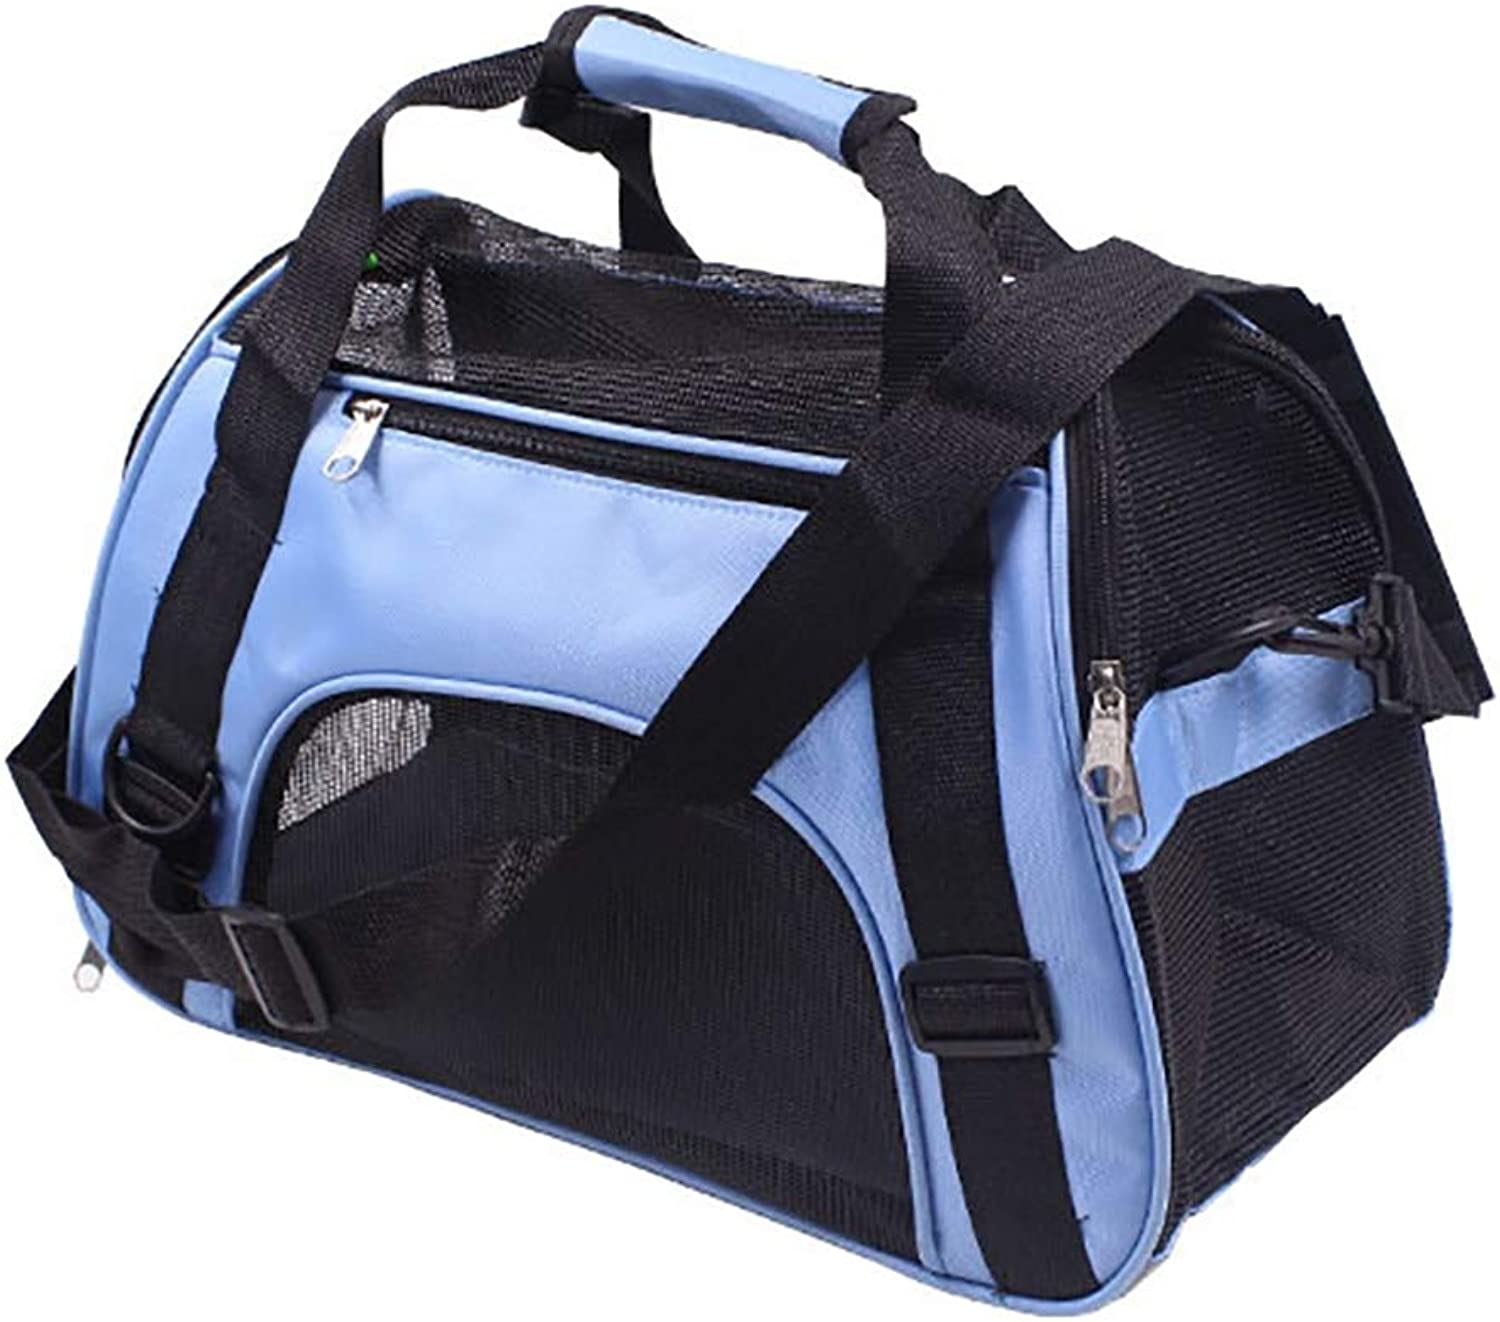 LOHUA Airline Approved Soft Sided Pet Carrier,Pet Supplies,For Small Dogs, Cats, Puppy, Soft Sided Collapsible Pet Travel Carrier For,Airline Approved Pet Travel Bags